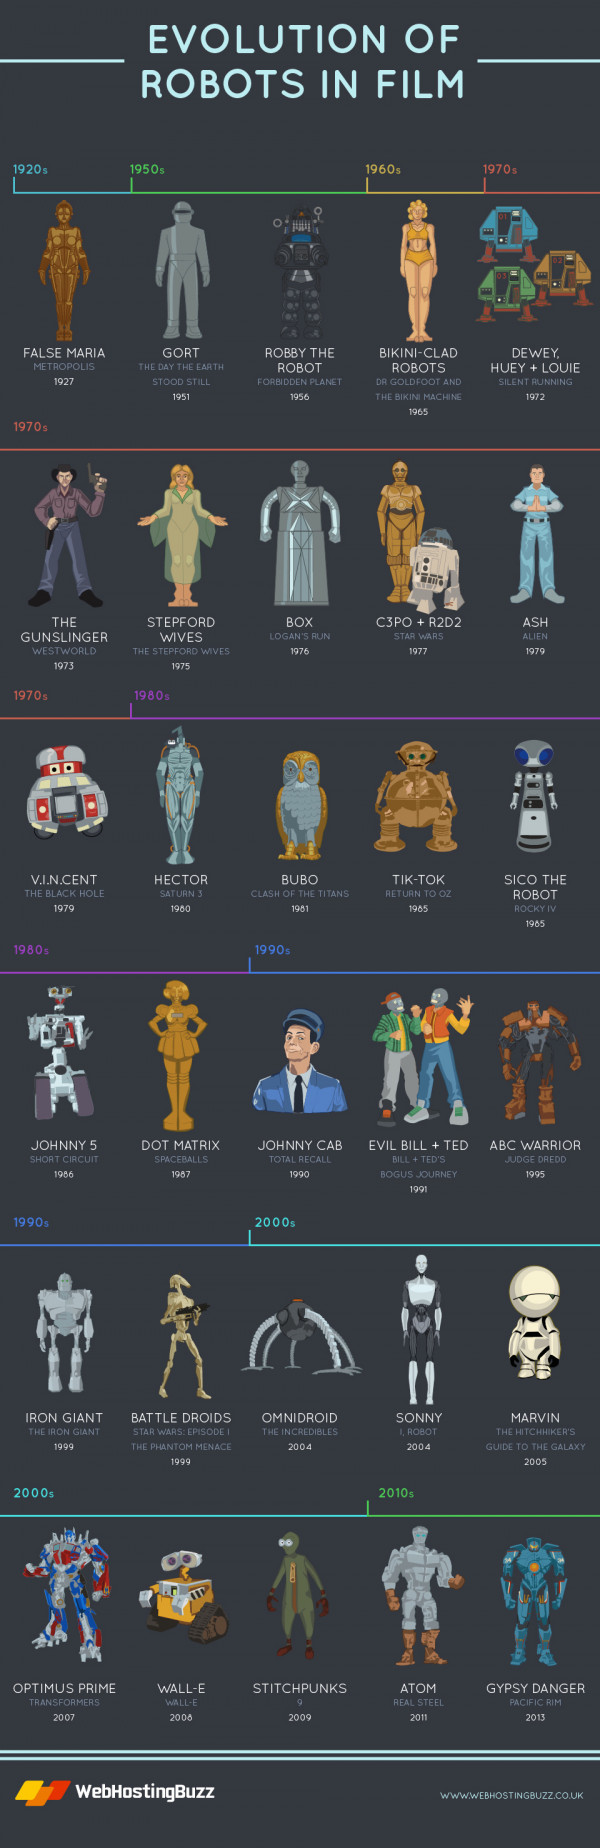 Evolution of Robots in Film